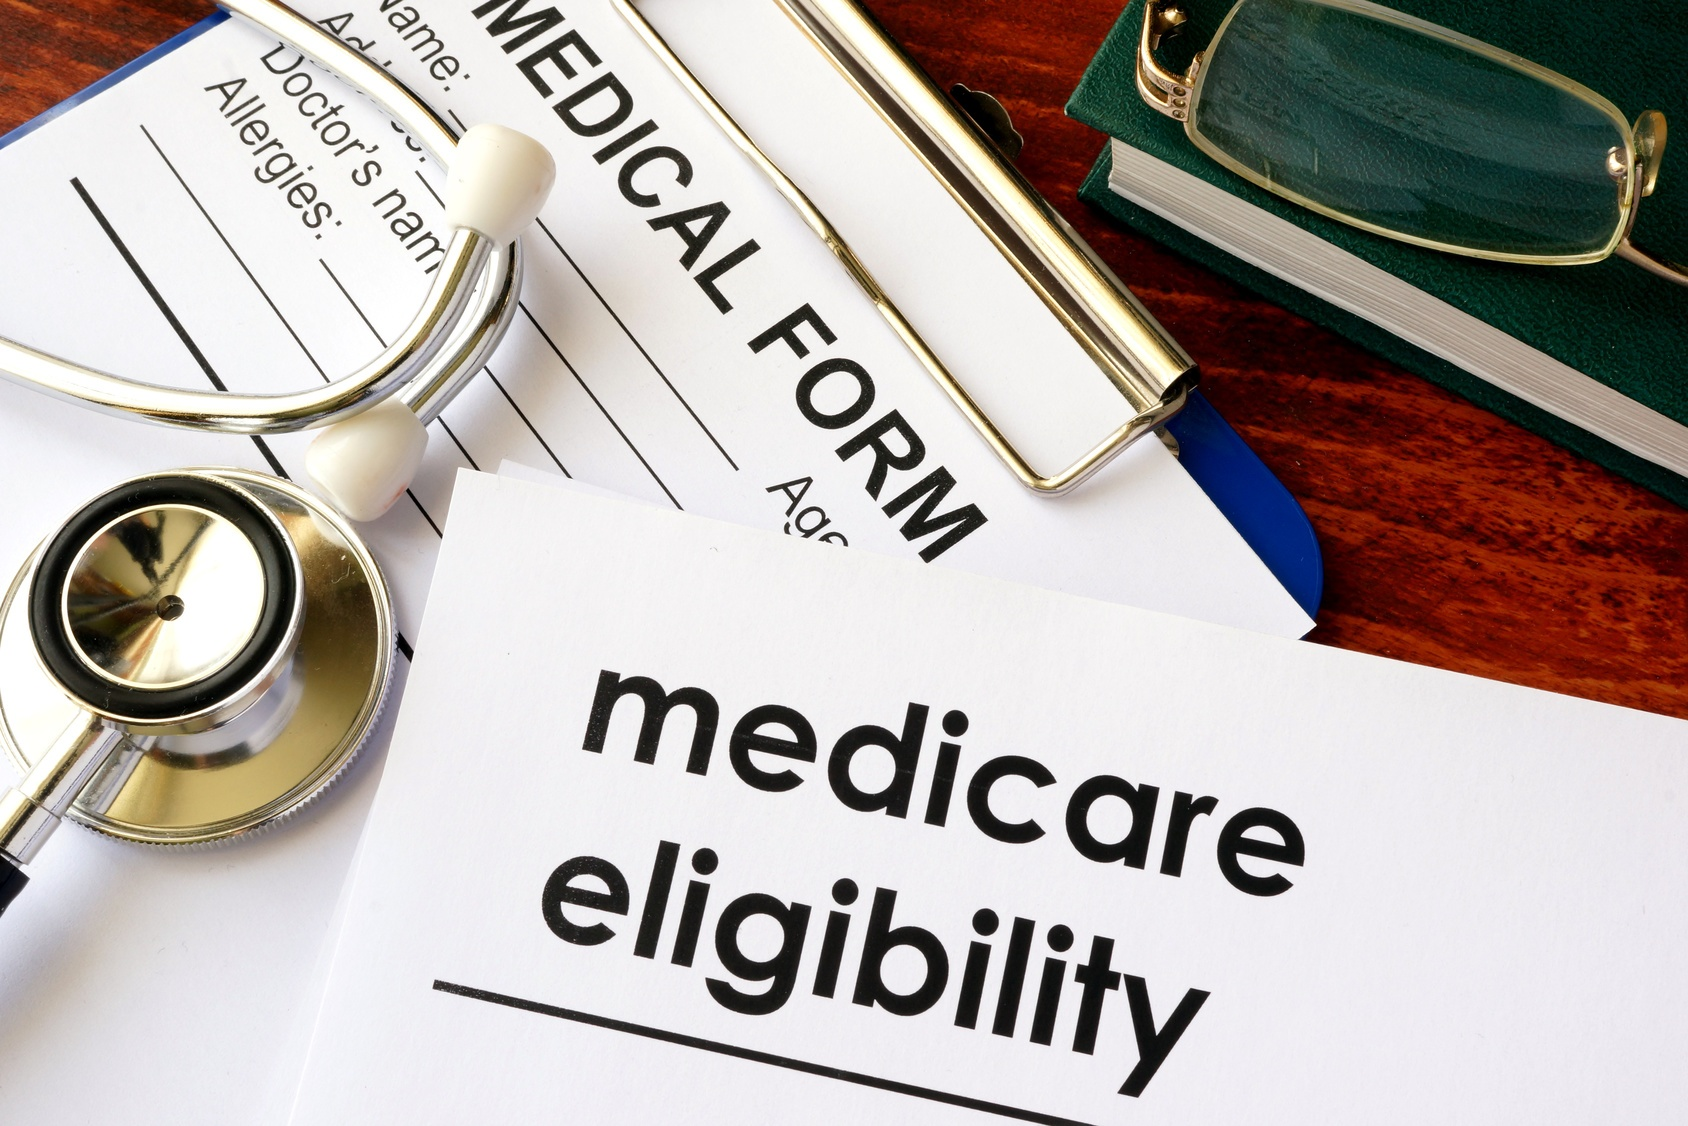 How Your AT&T Benefits Change with Medicare Eligibility